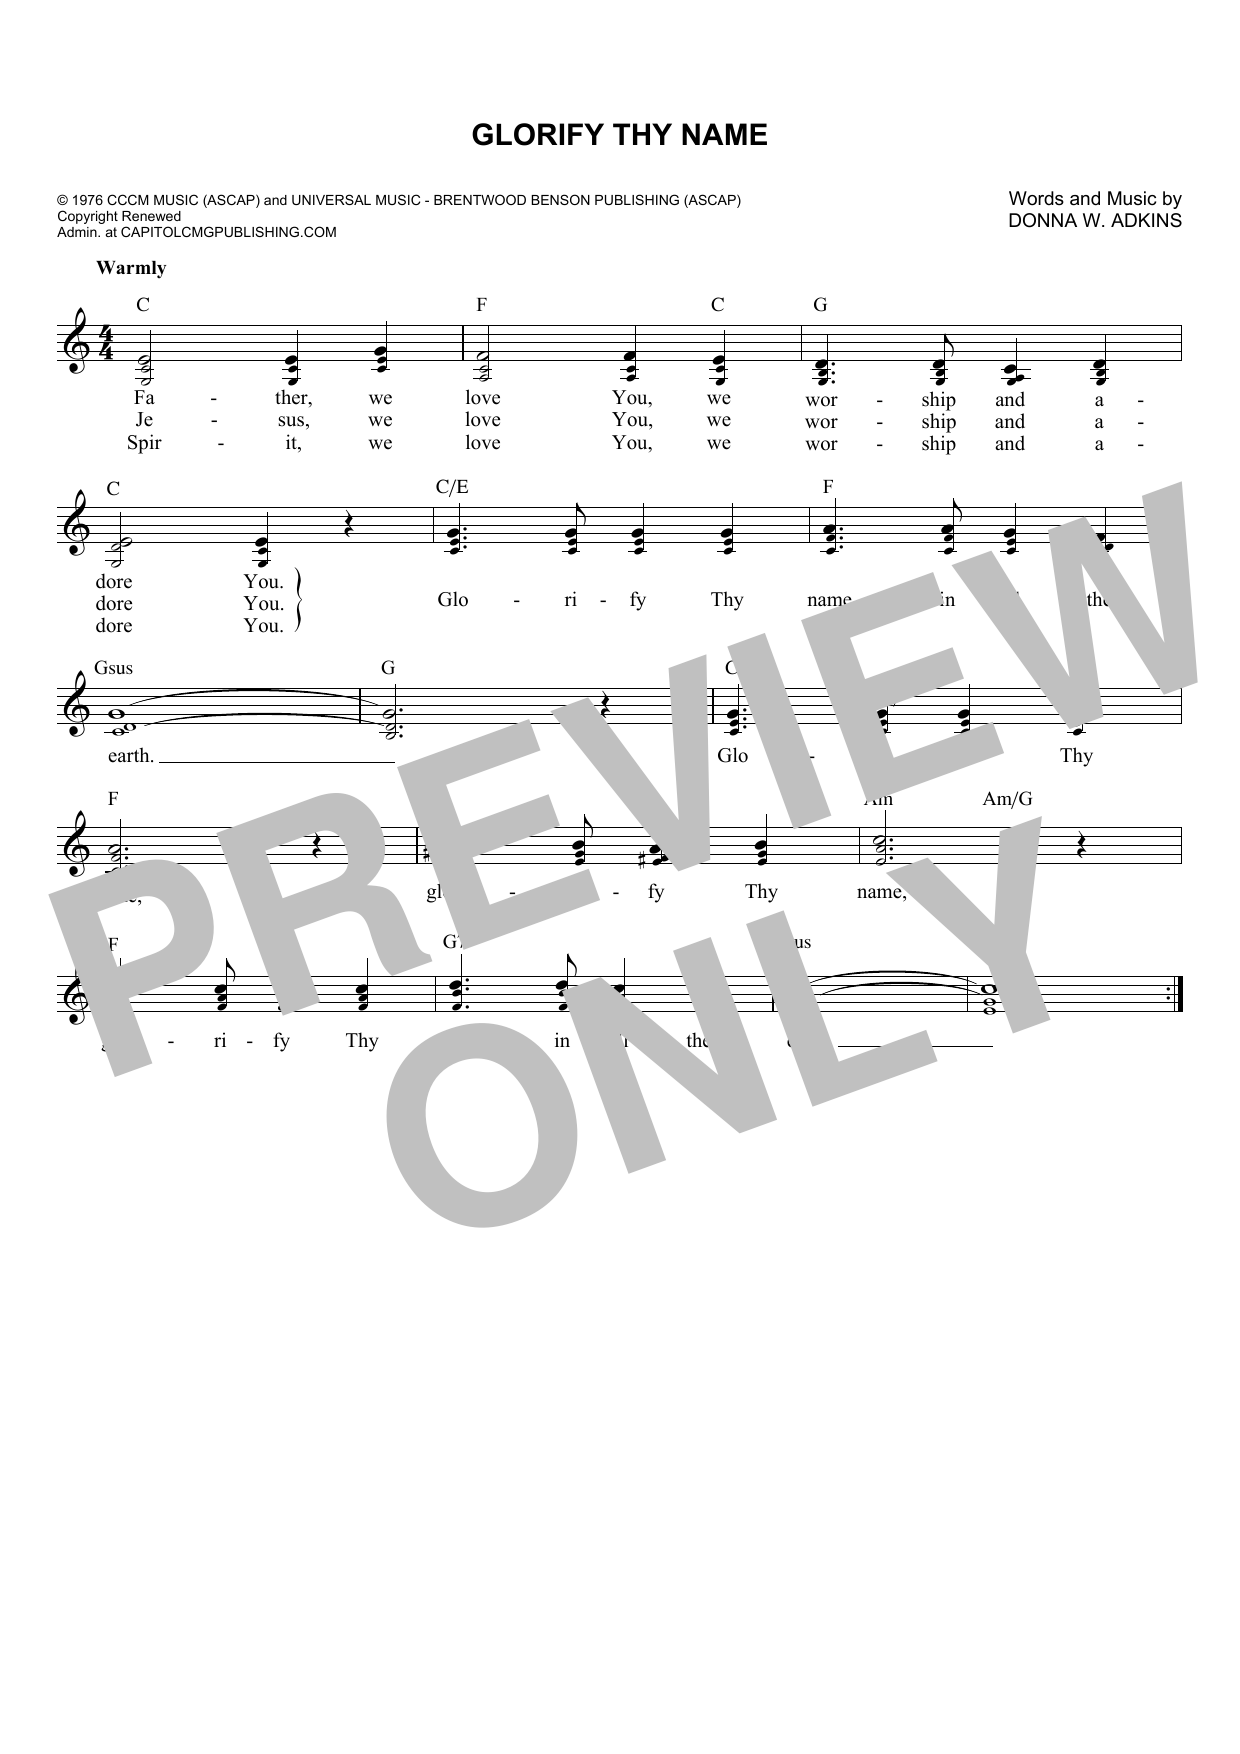 Donna Adkins Glorify Thy Name sheet music notes and chords. Download Printable PDF.